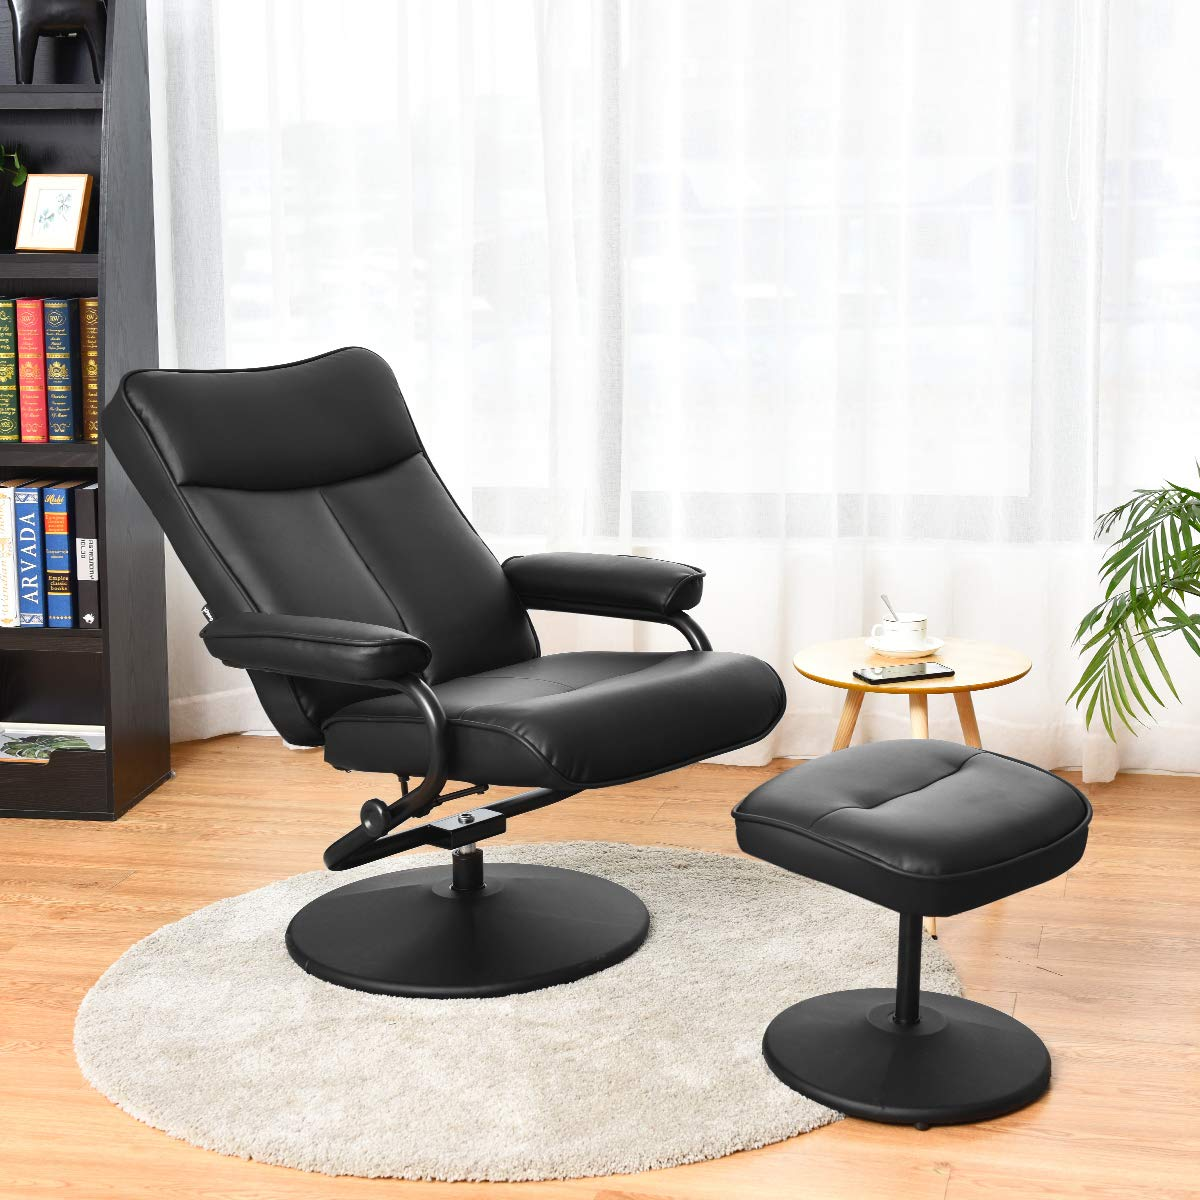 Giantex Swivel Recliner Chair with Footrest Stool Ottoman, PVC Leather Lounge Armchair, 360 Degree Swivel Overstuffed Padded Seat Chair, Leather Recliner and Ottoman Set (Black) by Giantex